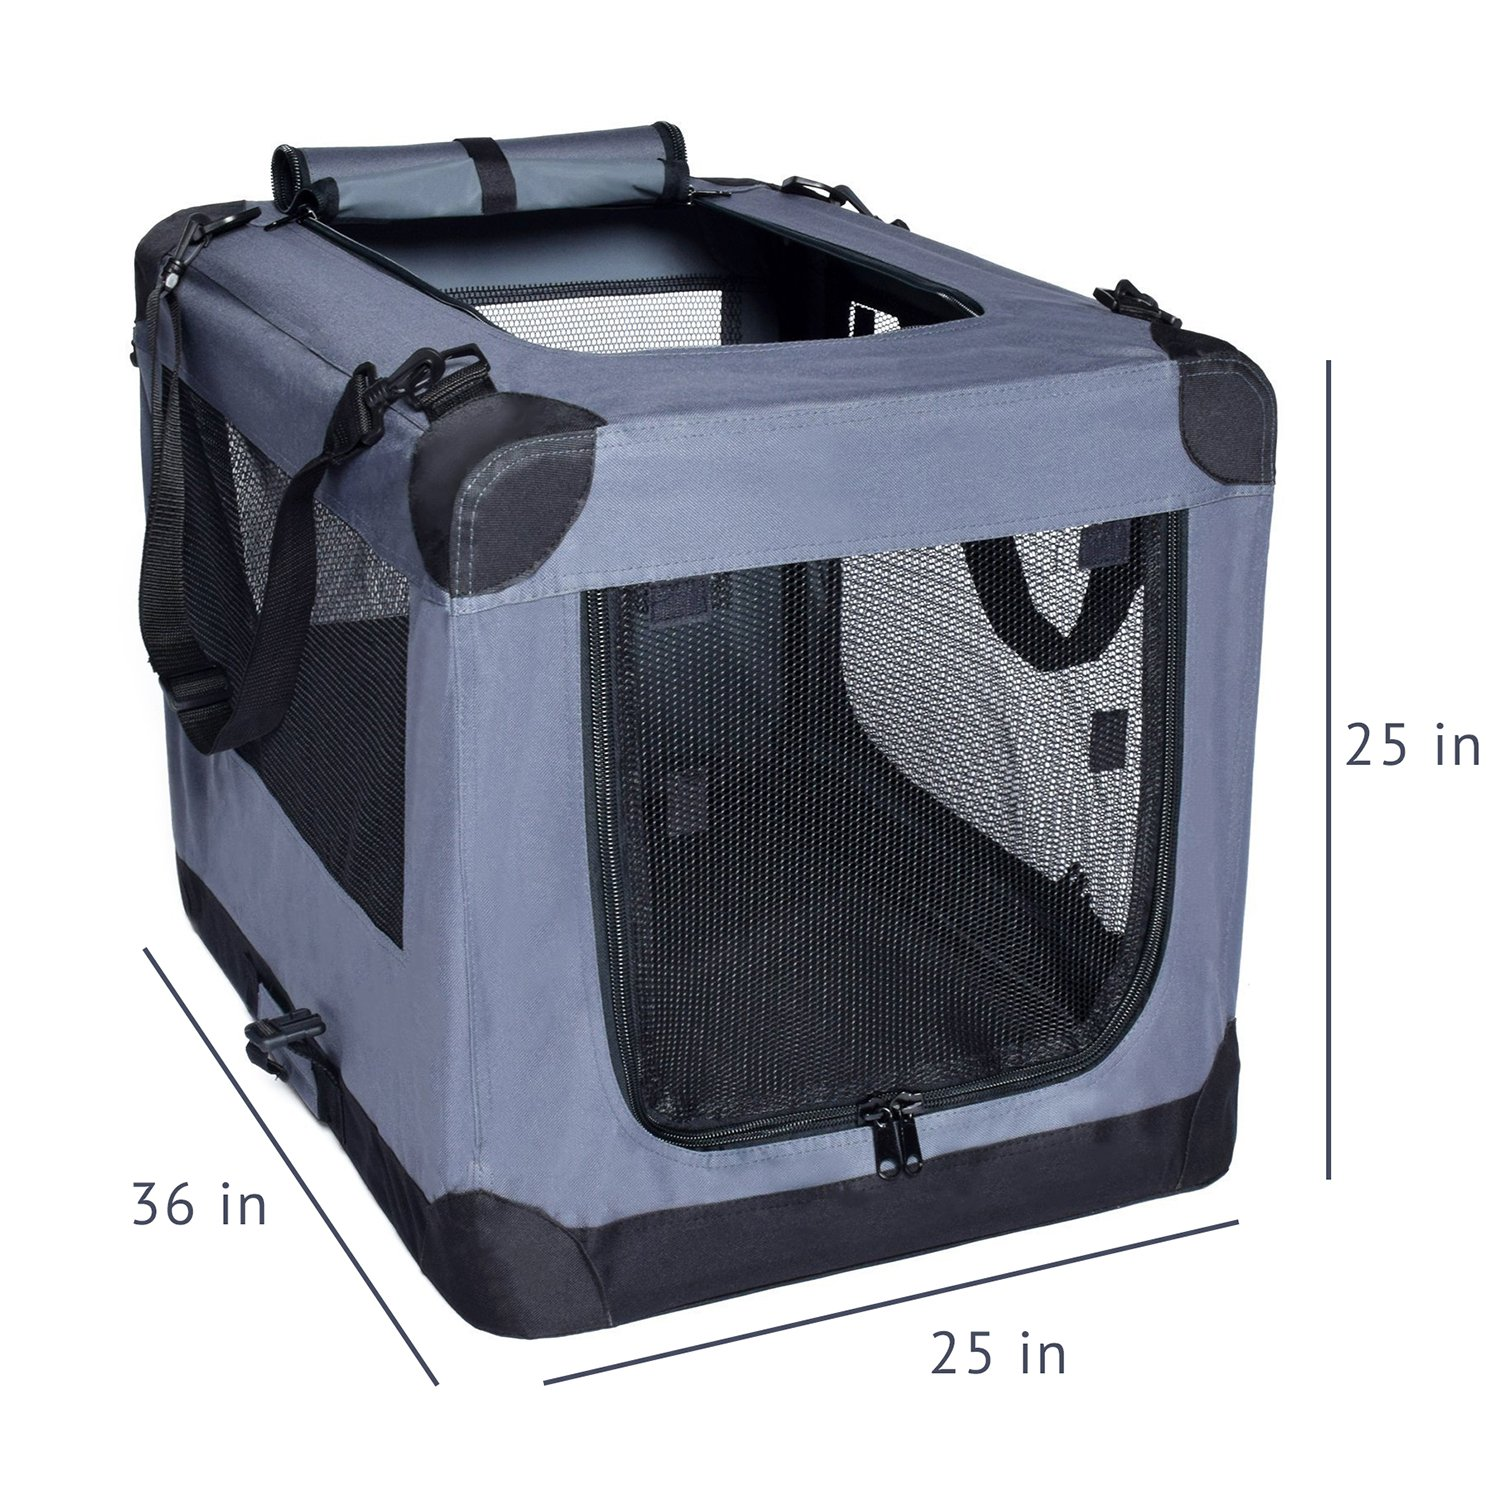 Arf Pets Dog Soft Crate 36 Inch Kennel for Pet Indoor Home & Outdoor Use - Soft Sided 3 Door Folding Travel Carrier with Straps by Arf Pets (Image #2)